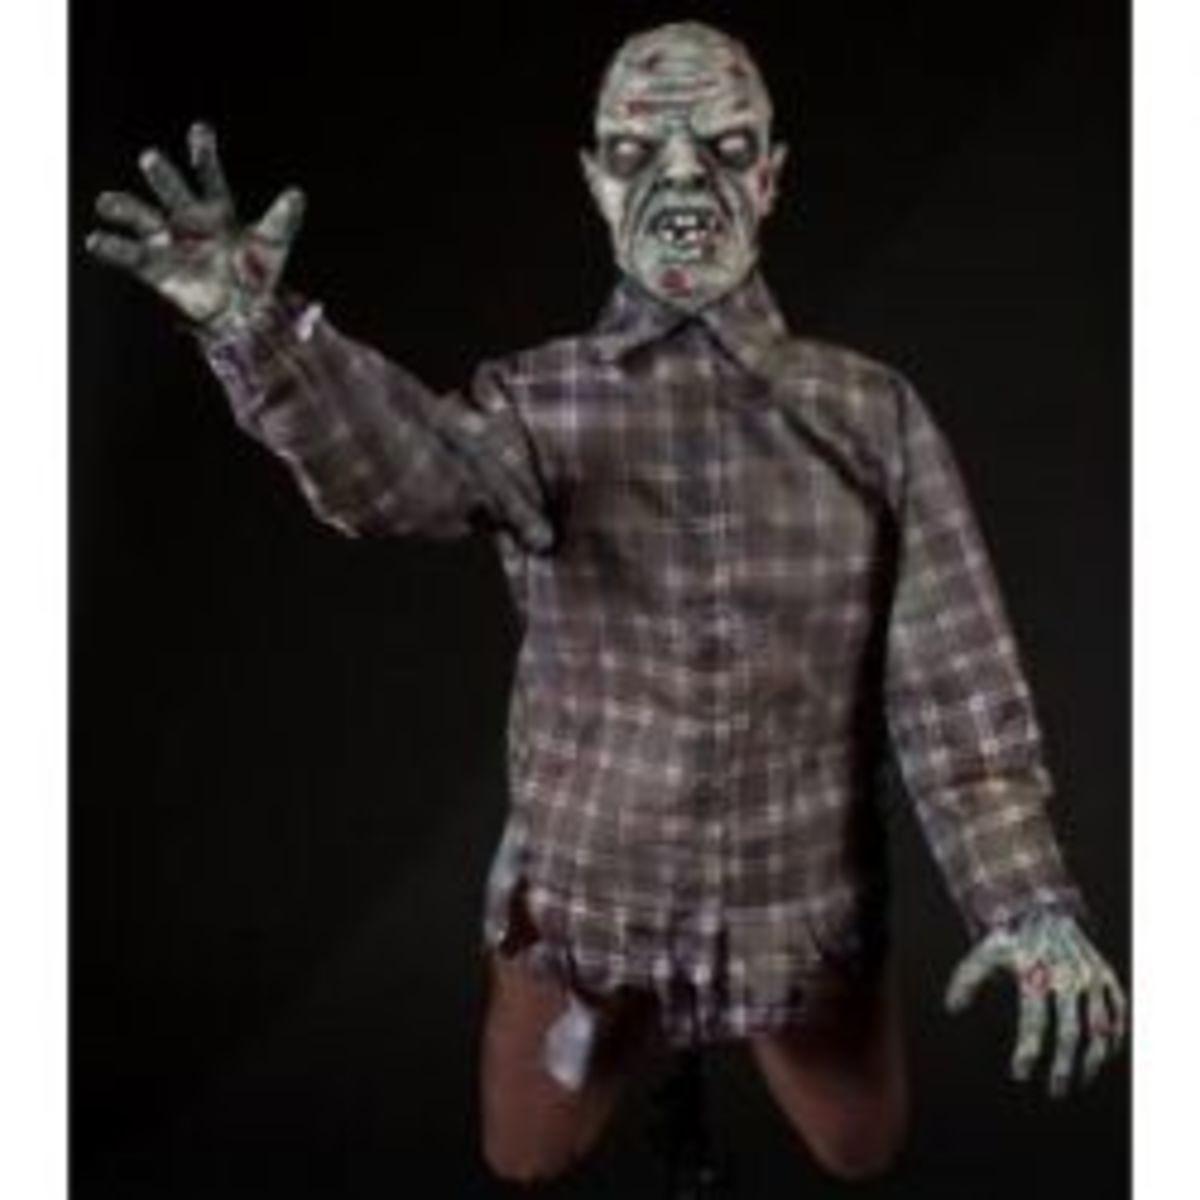 Scary Zombie Prop